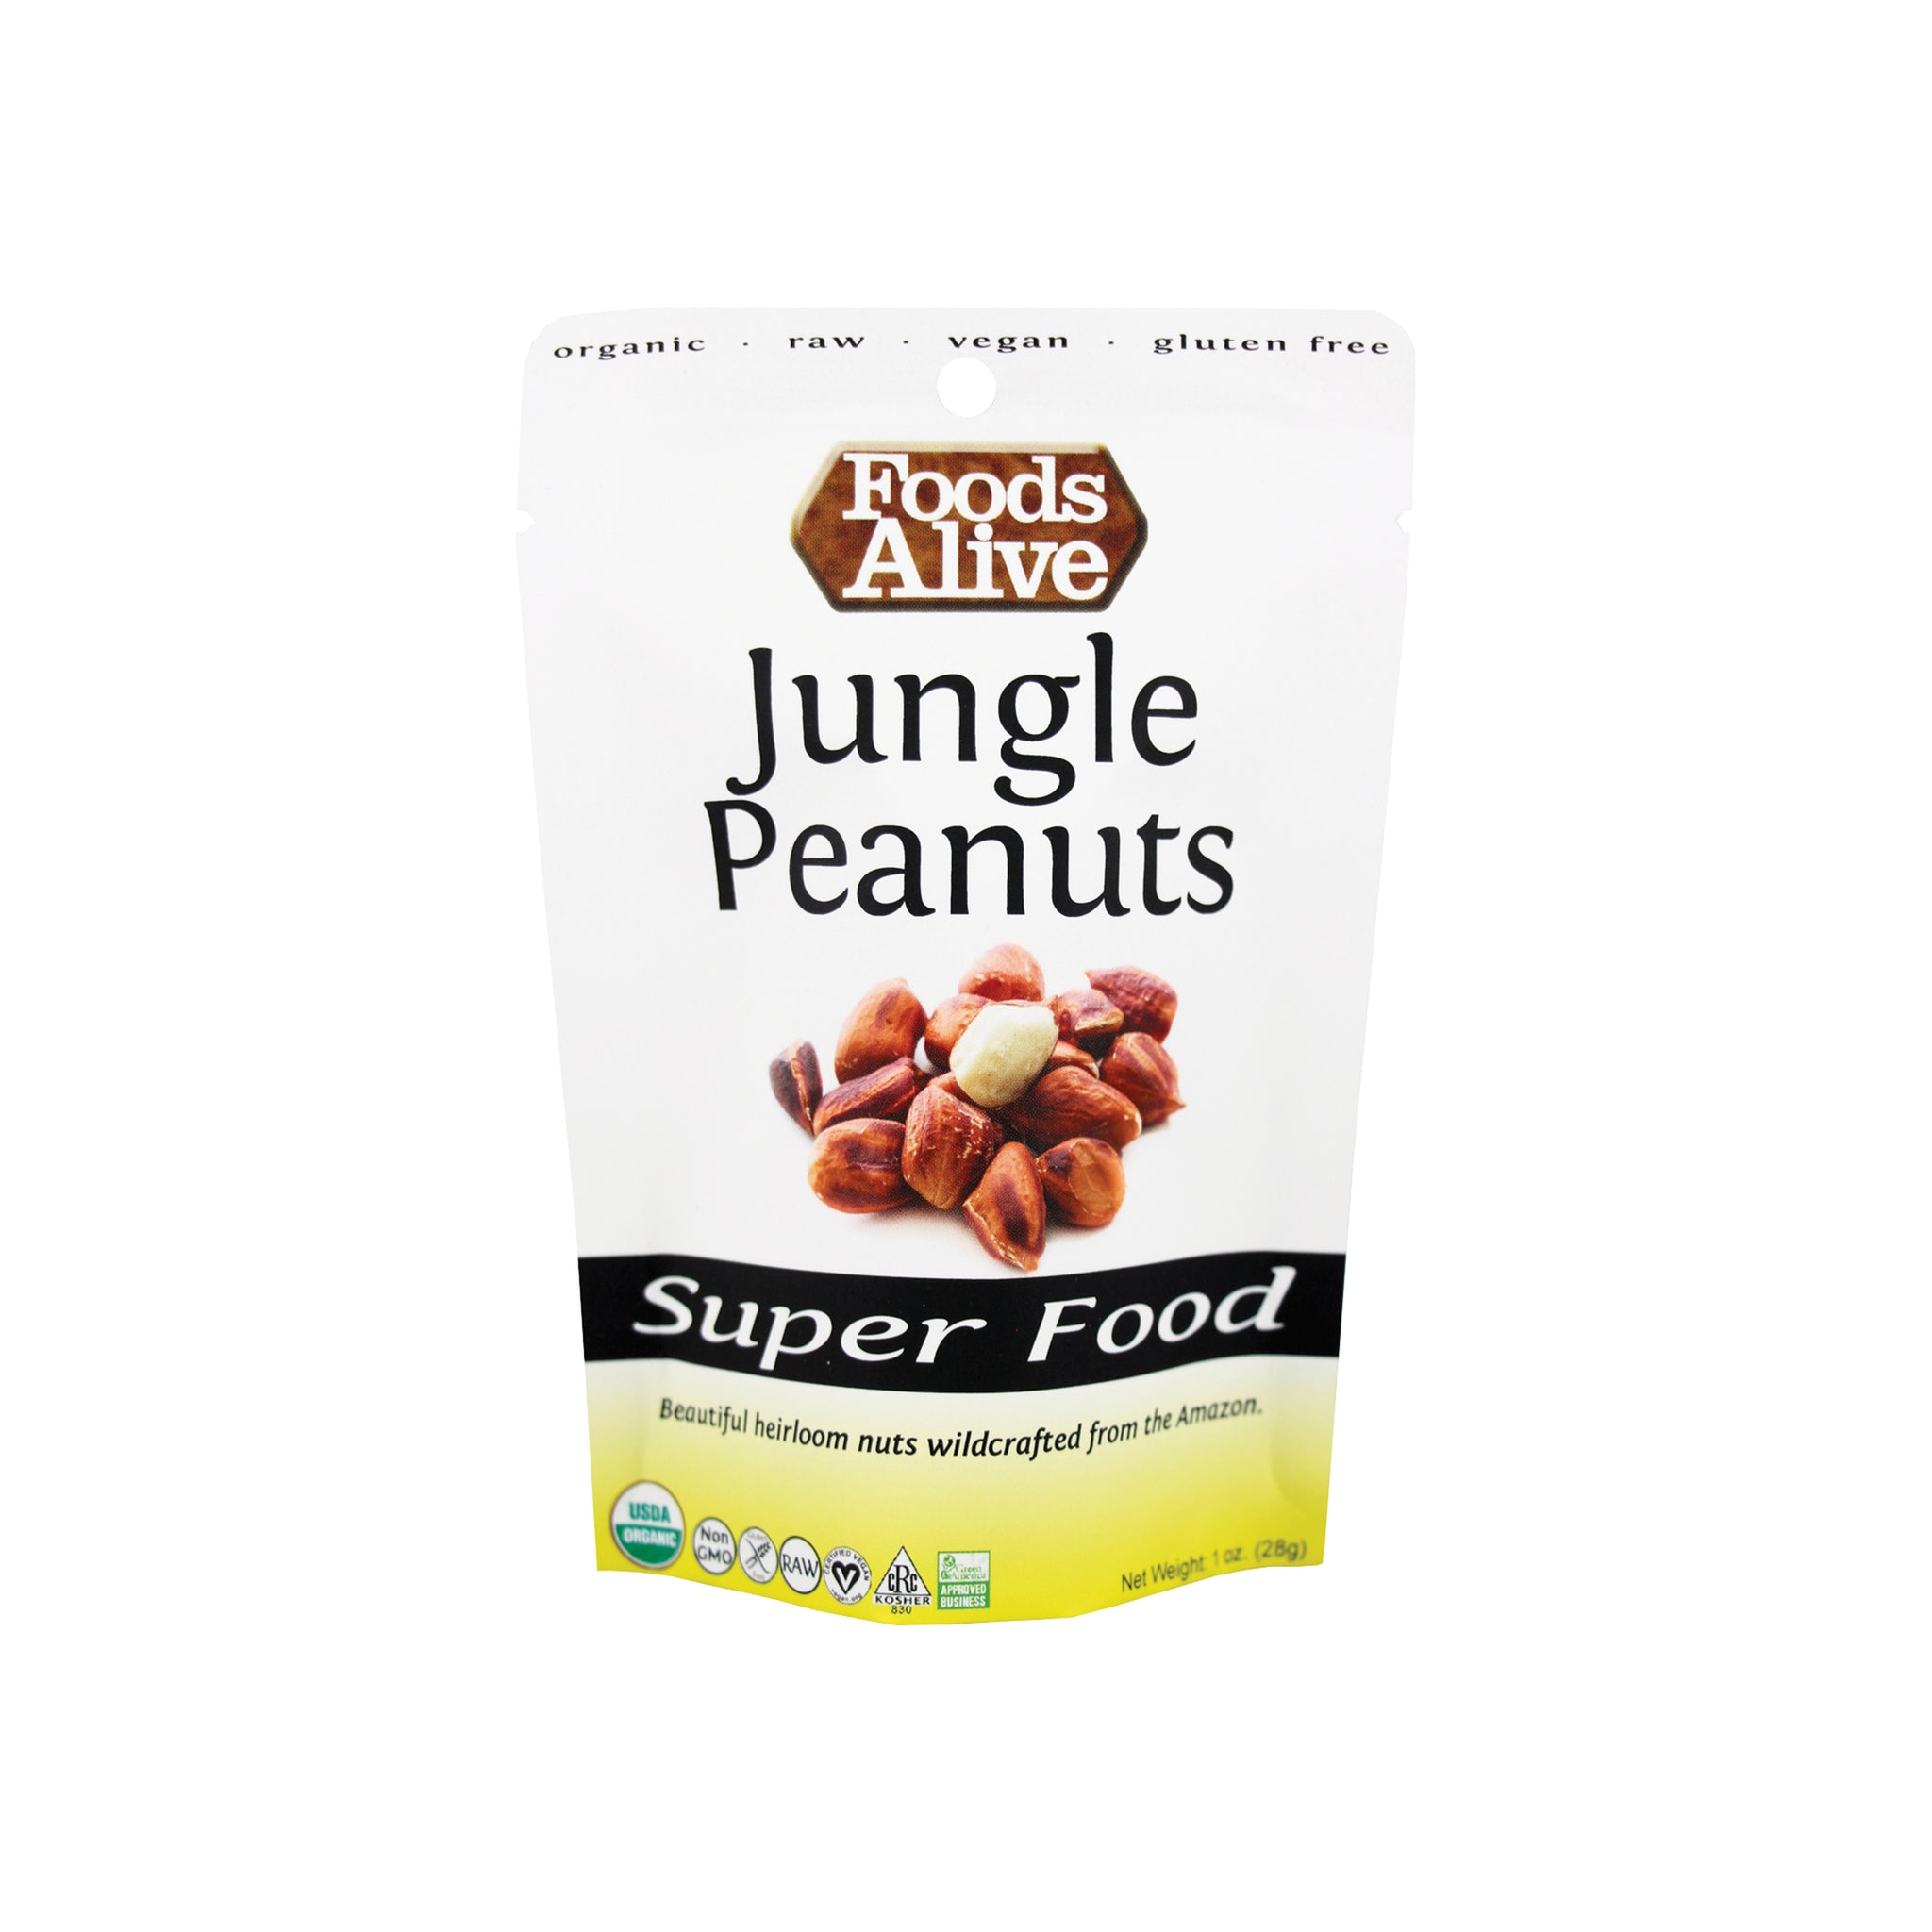 Foods Alive - Organic Wild Jungle Peanuts - Sample 1oz - Front